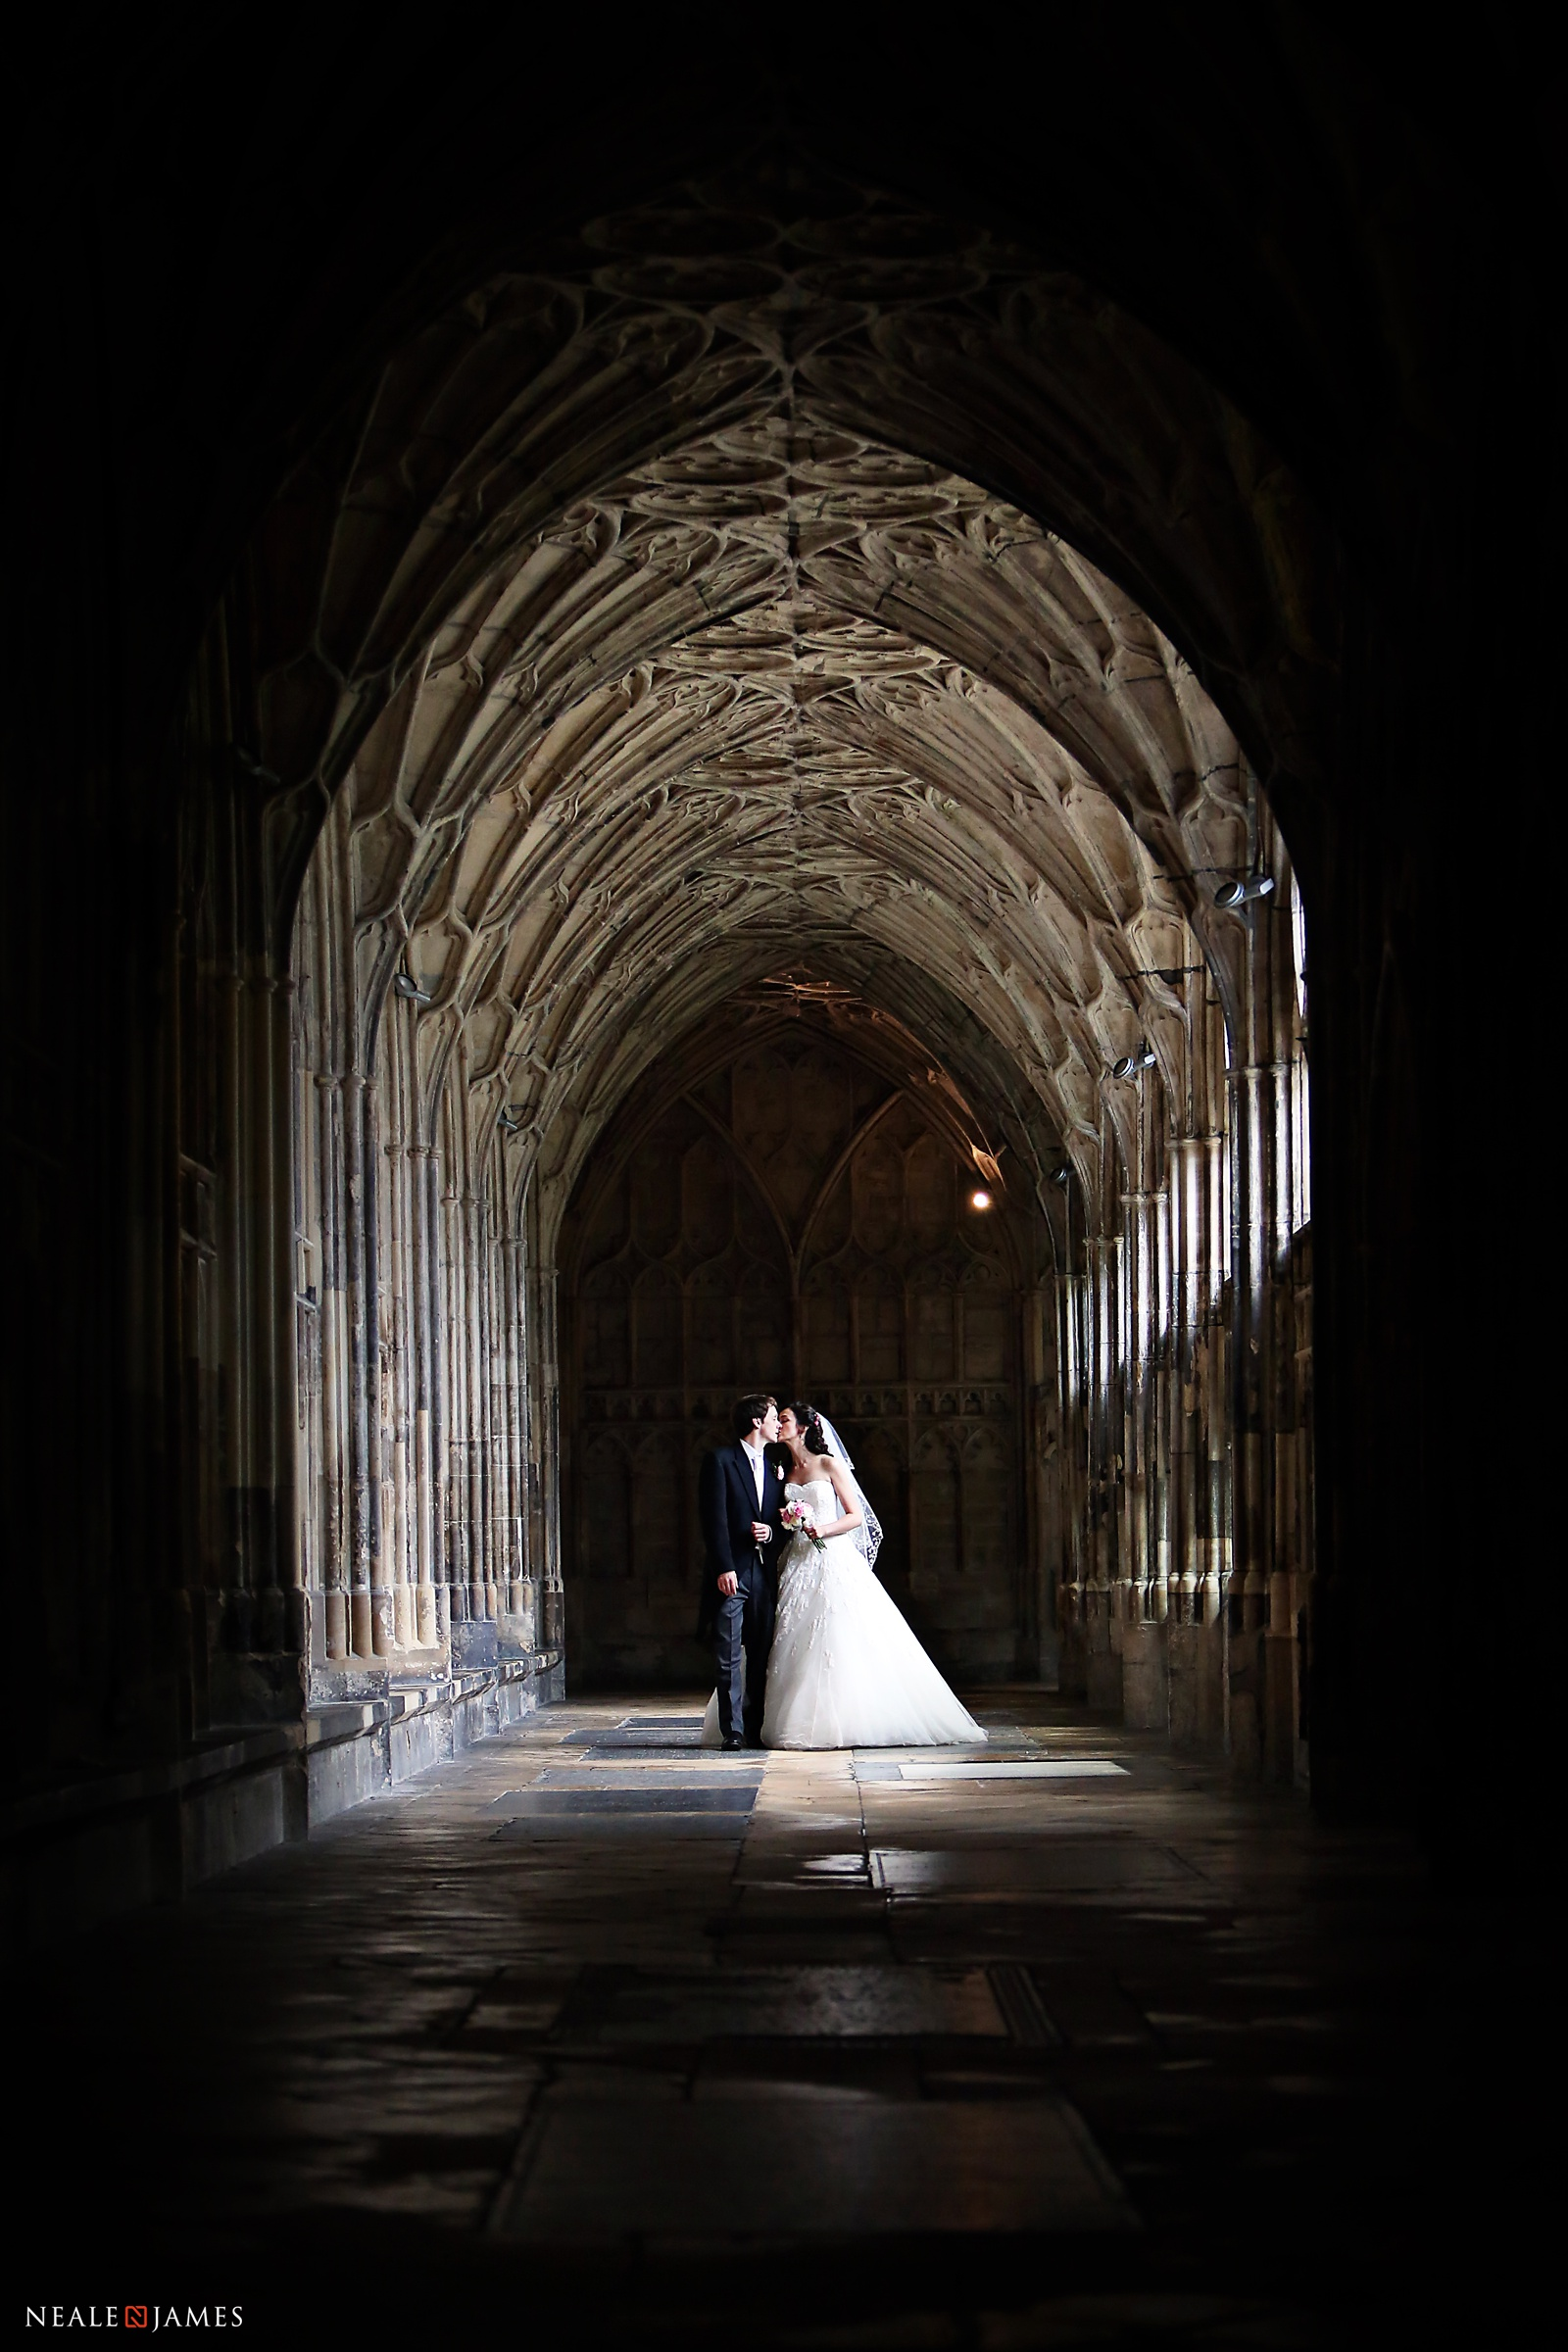 A bride and groom walking through the cloisters at Gloucester Cathedral on their wedding day